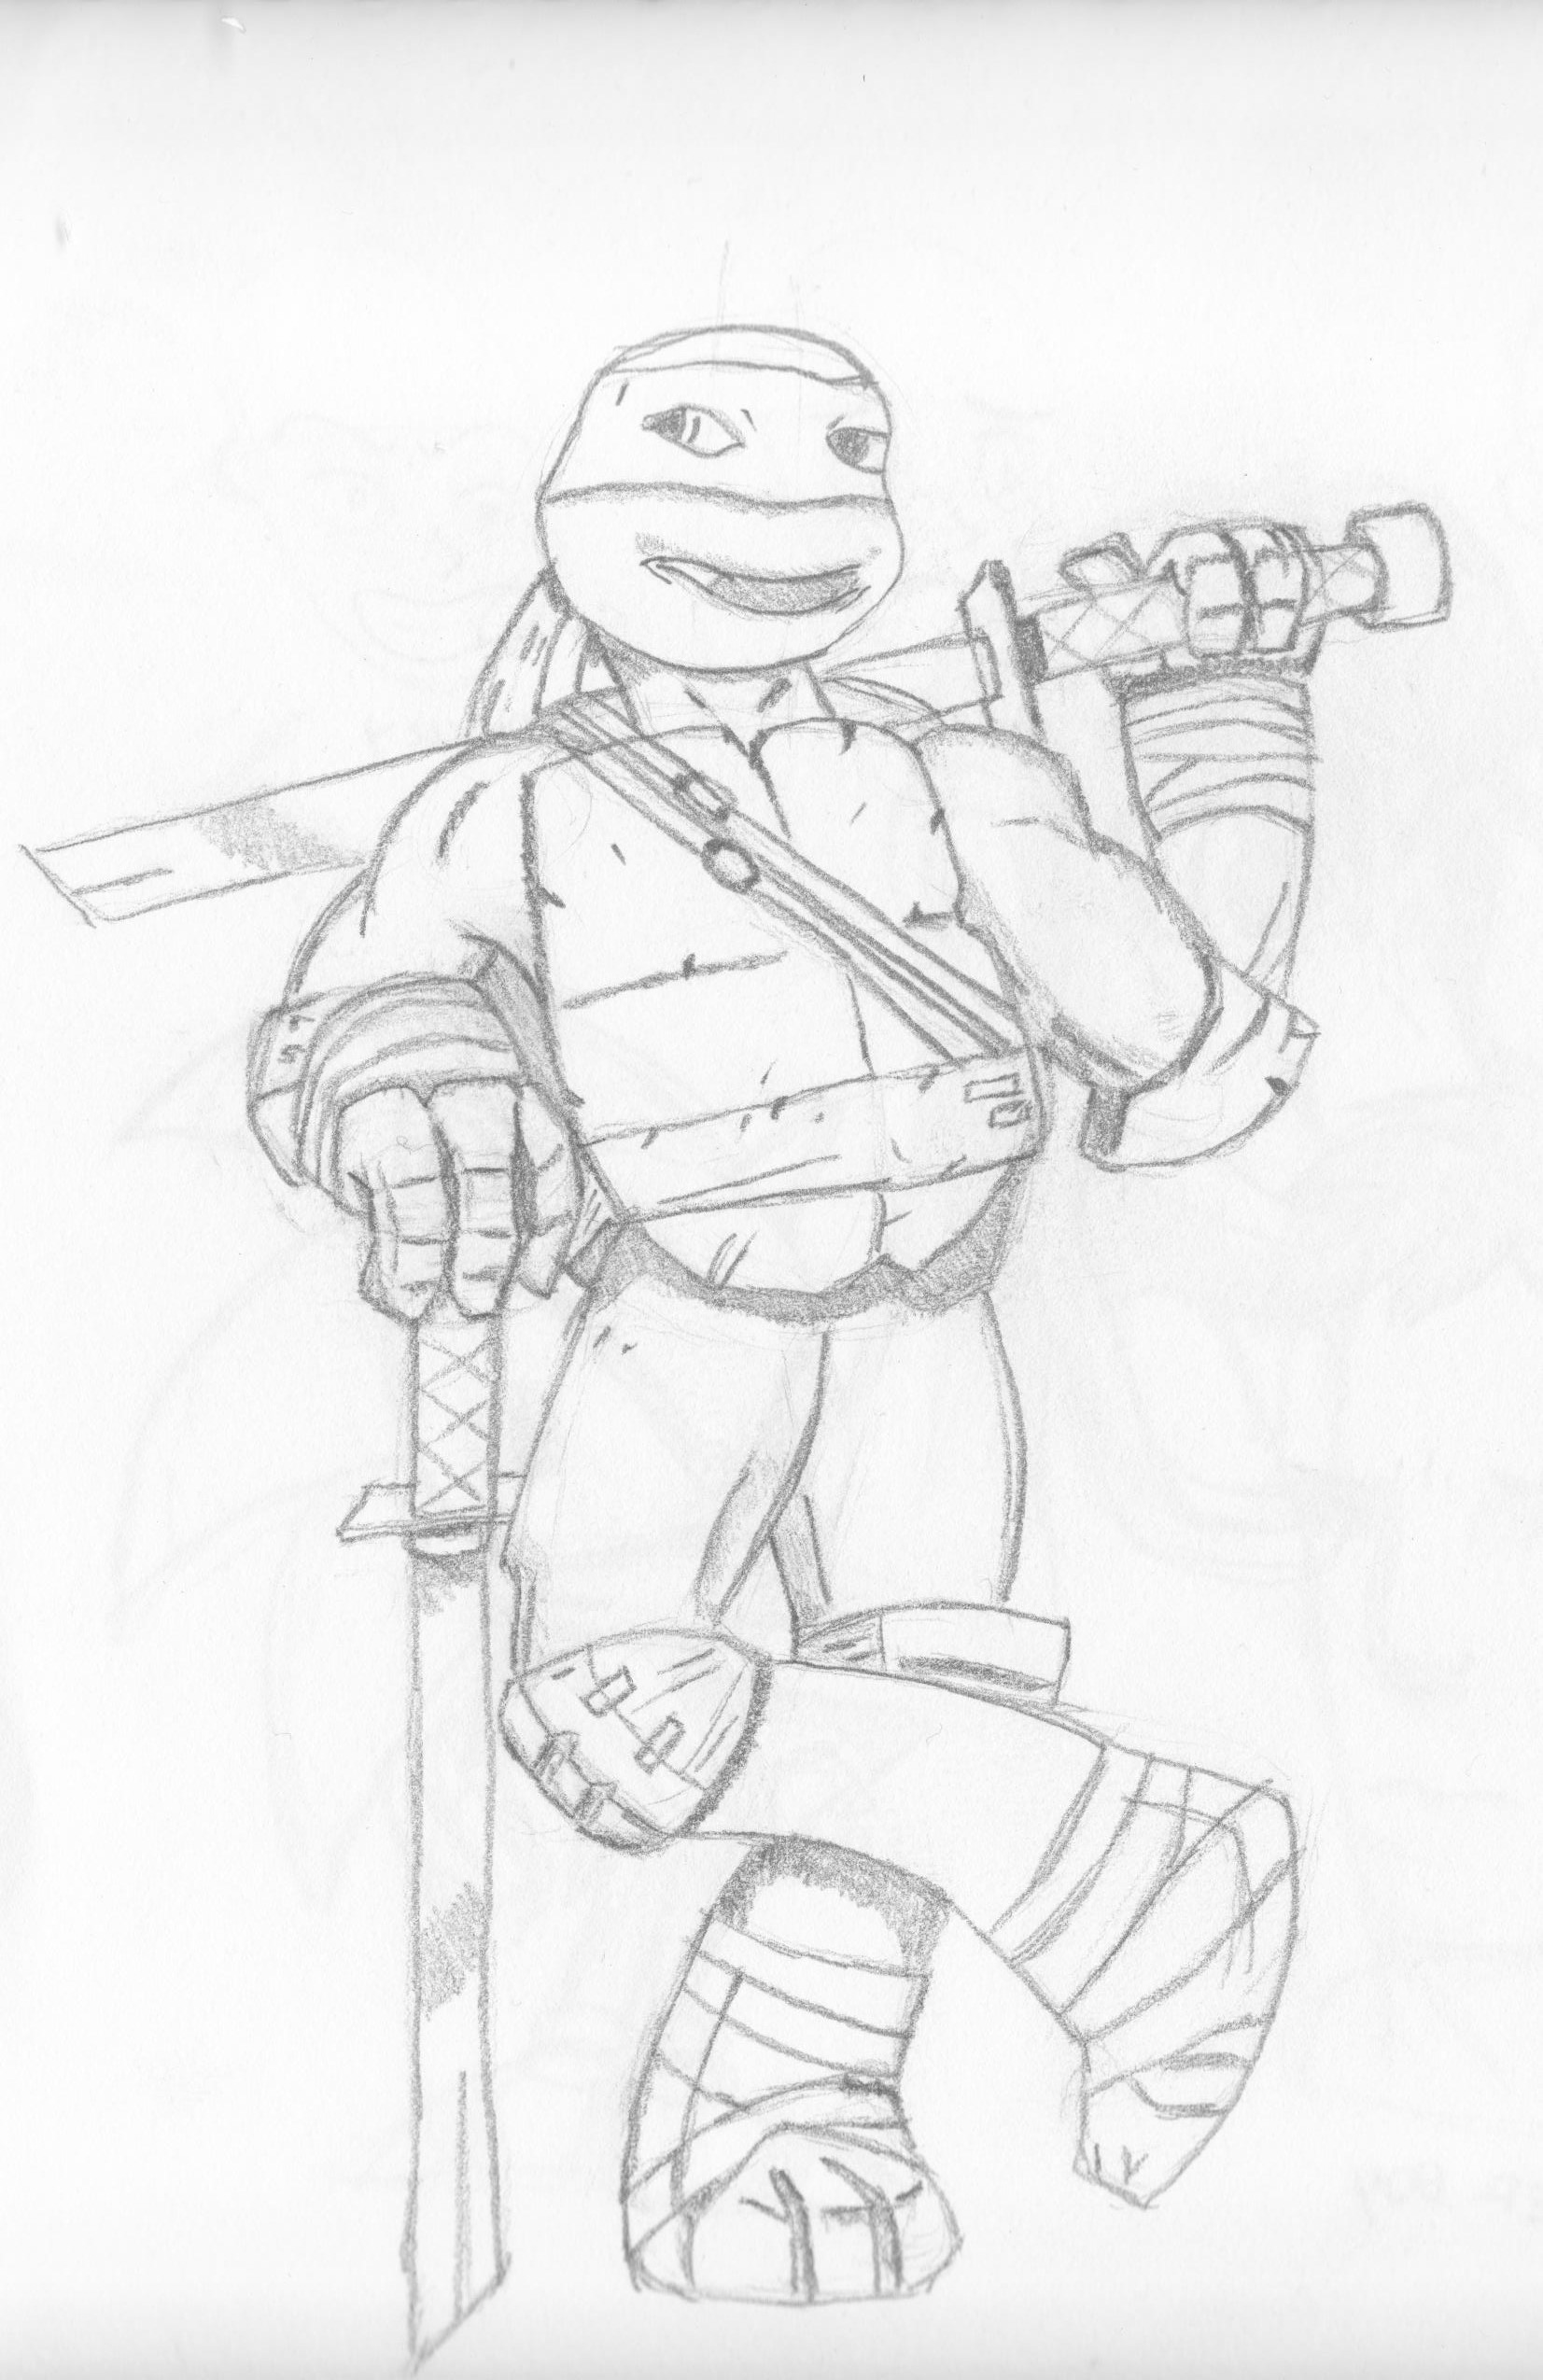 How To Draw Ninja Turtles Nickelodeon Style